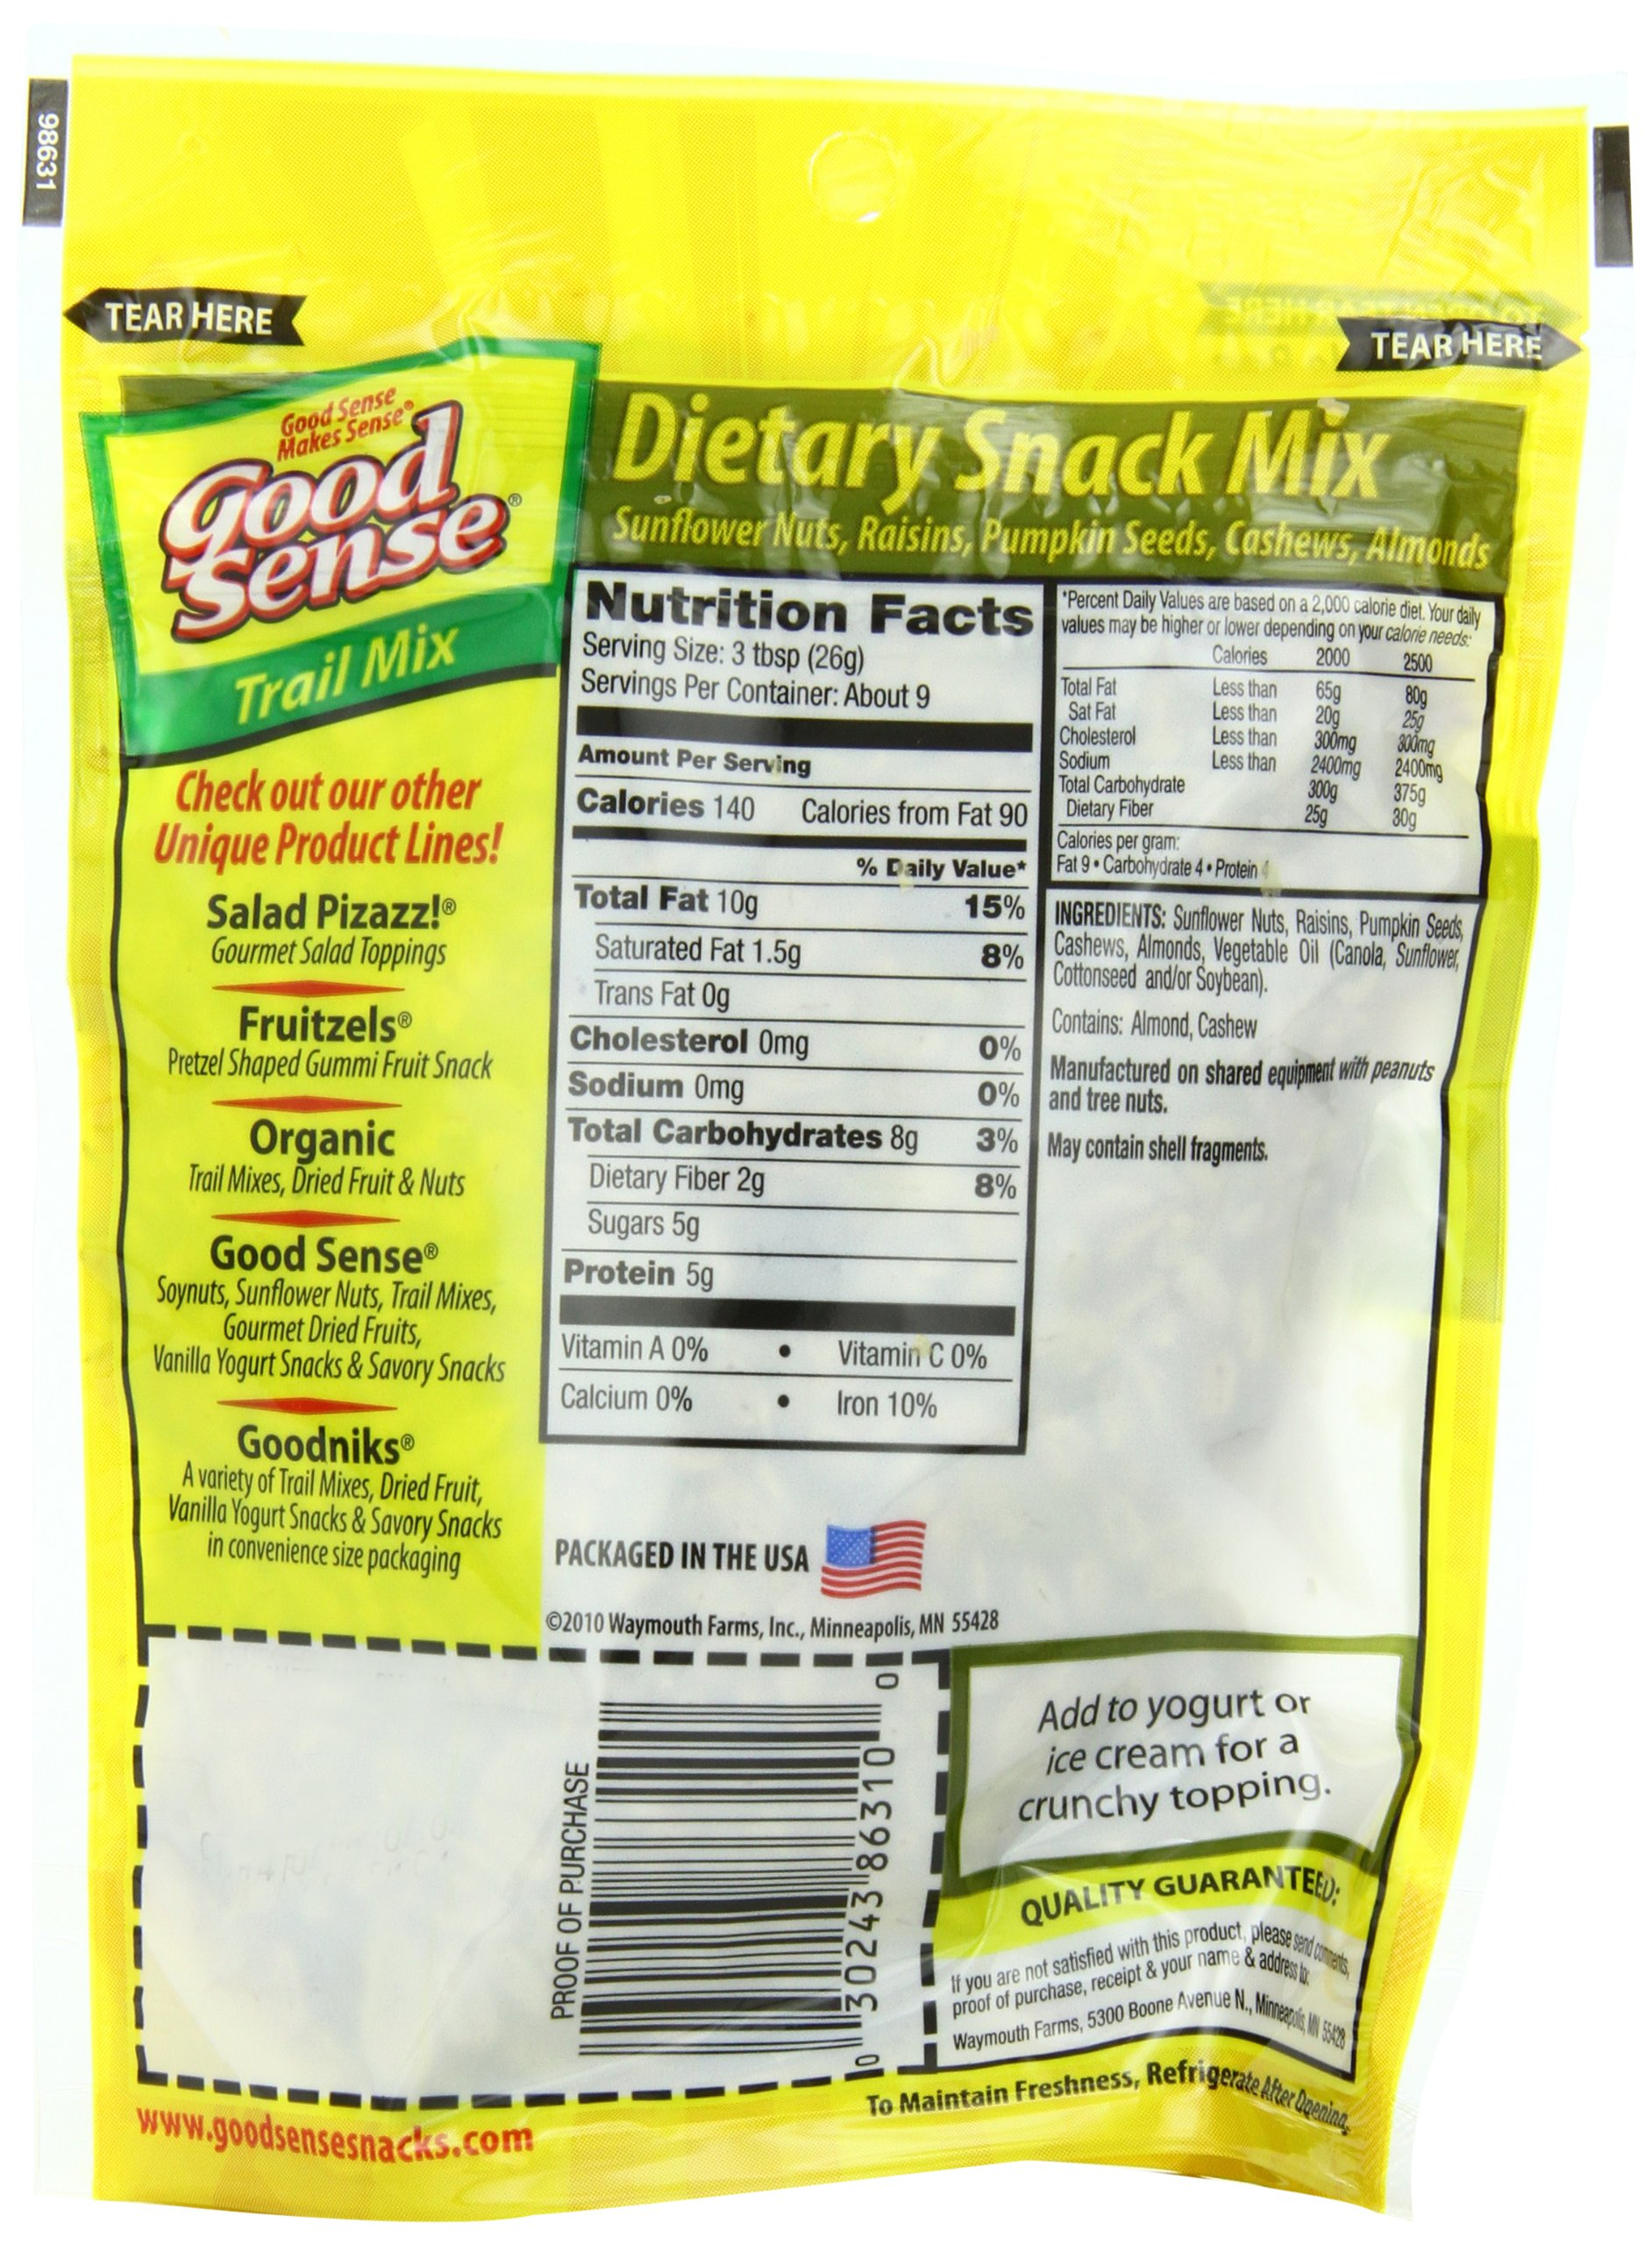 Good Sense Trail Mix, Dietary Snack Mix, 8-Ounce Bags (Pack of 12) by Good Sense (Image #4)